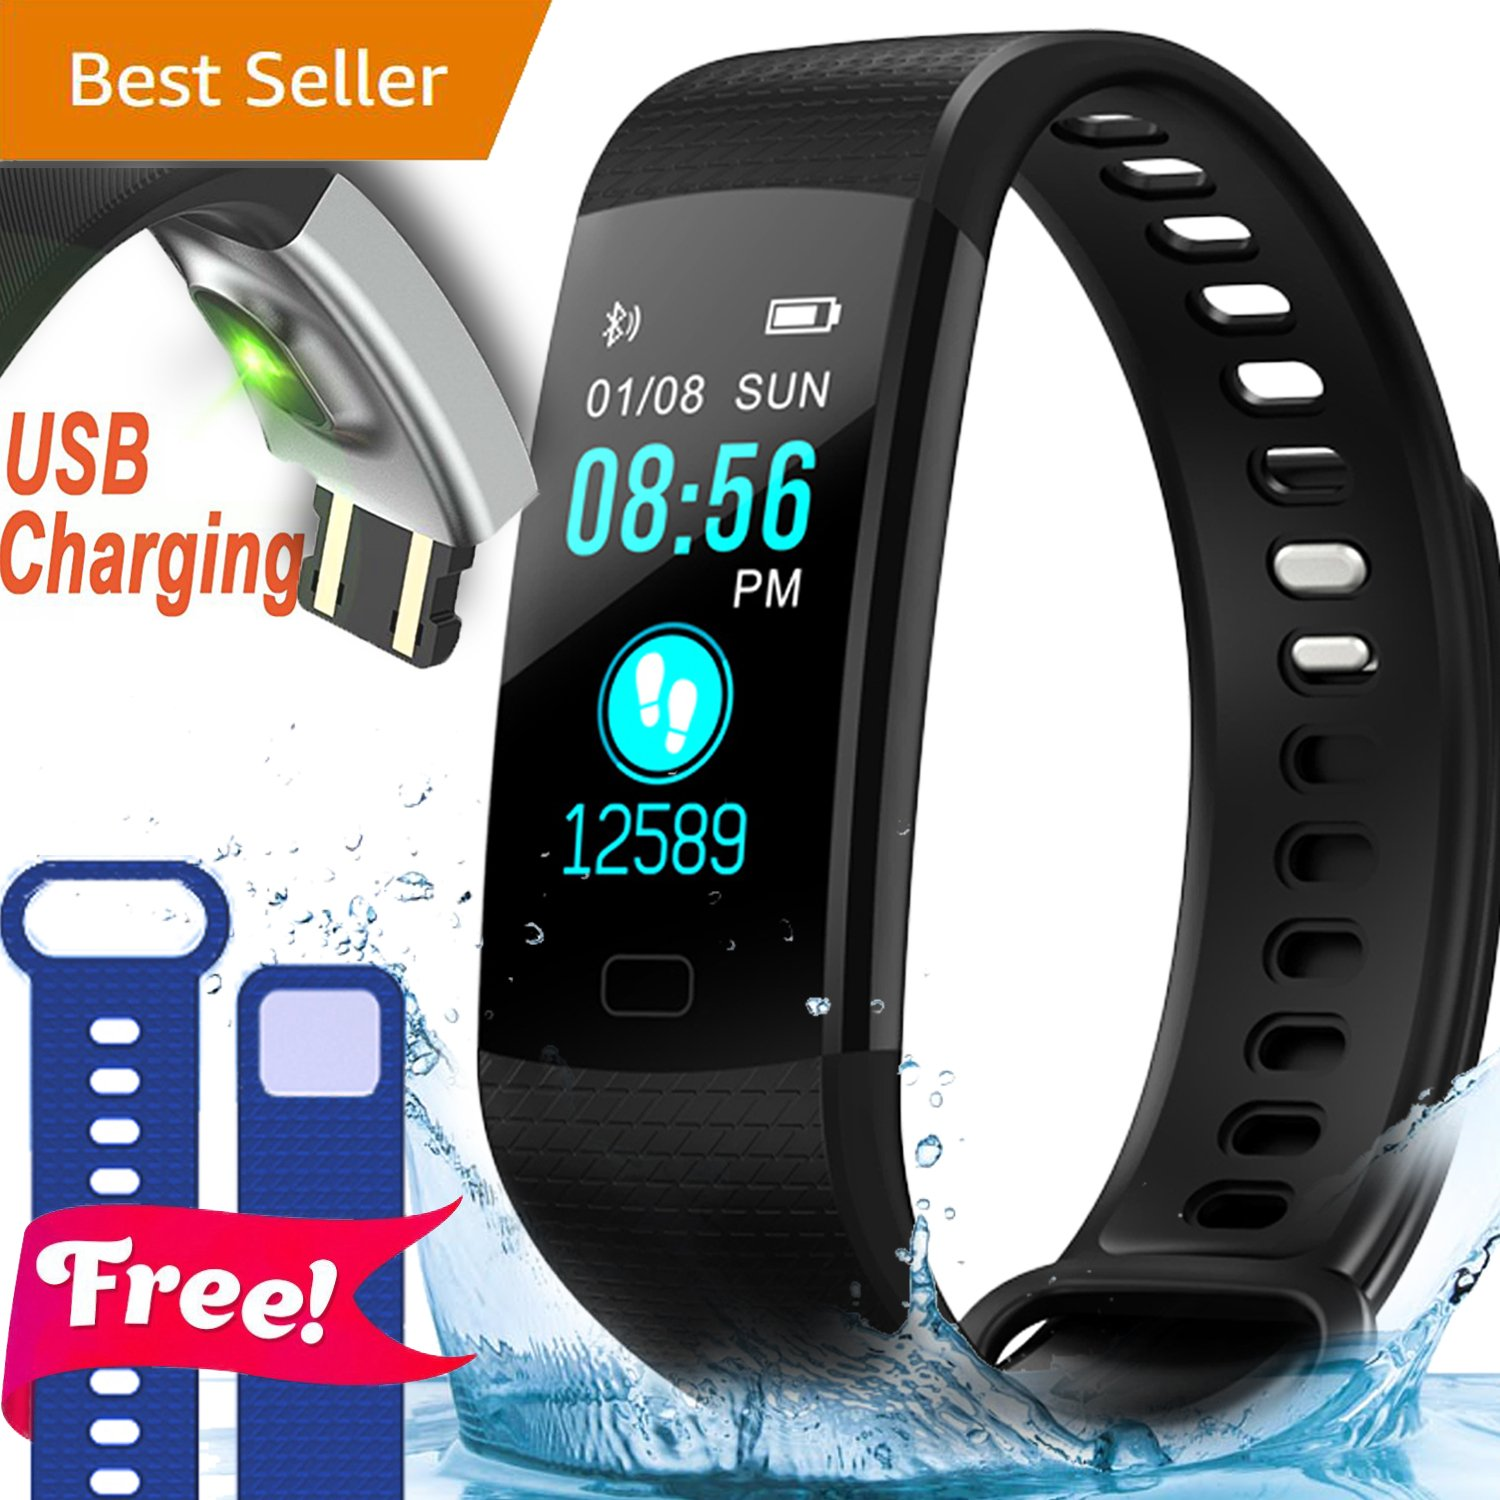 IP67 Fitness Tracker Smart Watch with Heart Rate Blood Pressure Monitor Color Screen Activity Tracker Smart Wristband Sleep Monitor Calorie Counter Pedometer 4 Sports mode Swim Run for Kids Women Men by Synmila